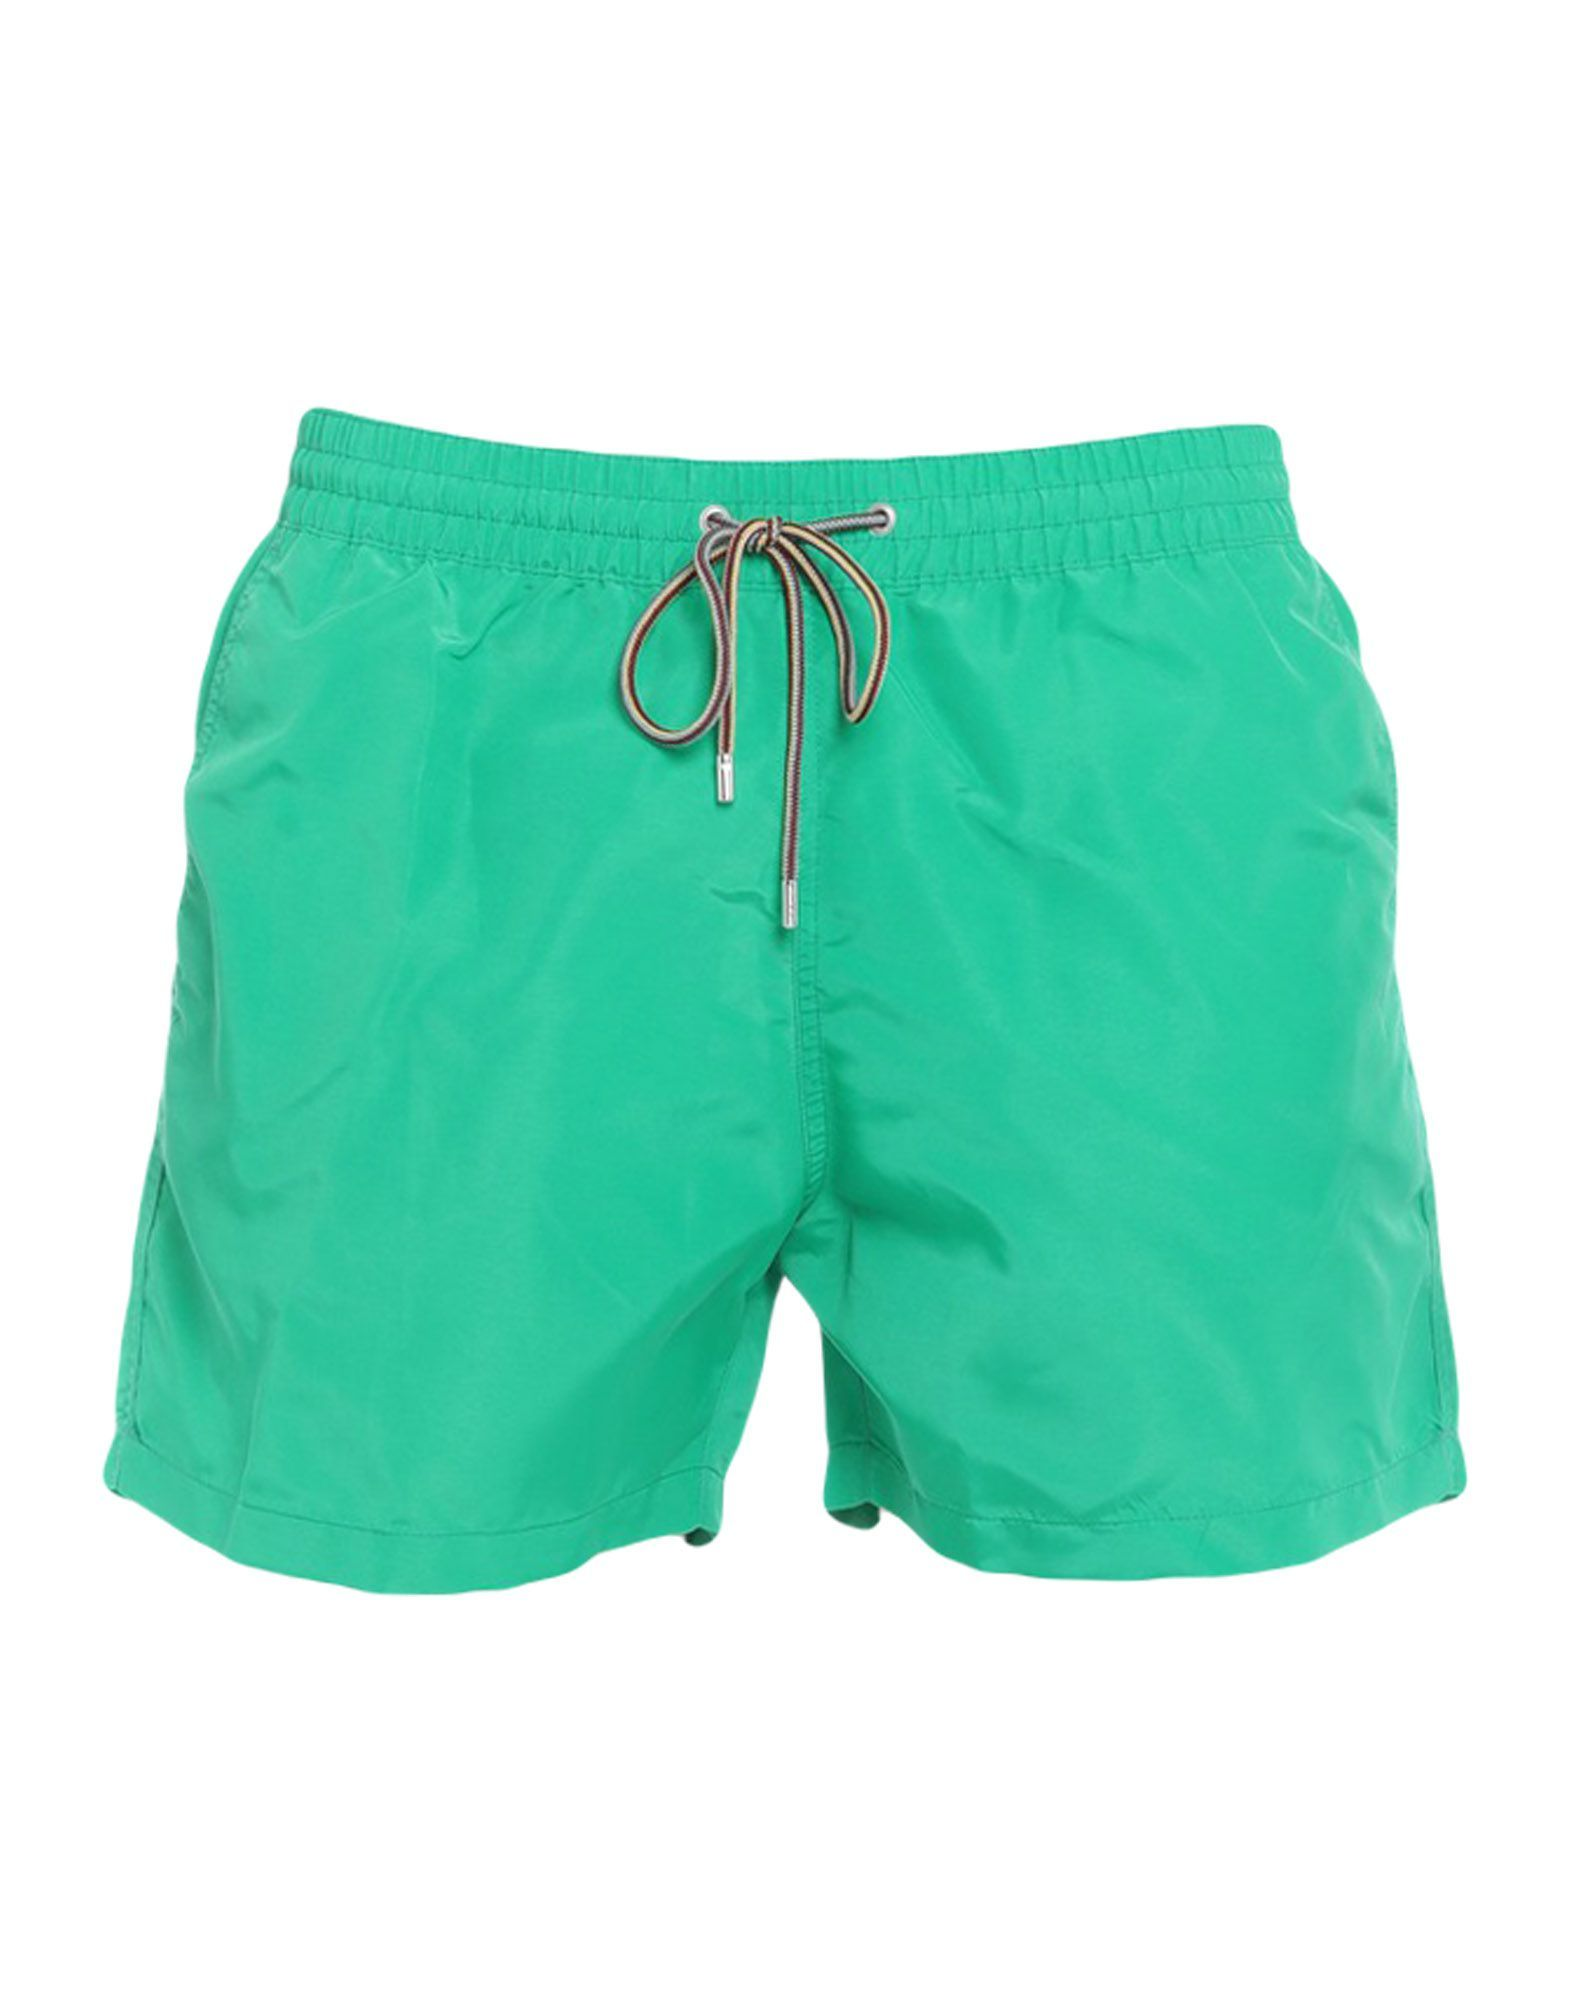 211ee56343 PAUL SMITH SWIM TRUNKS. #paulsmith #cloth | Paul Smith in 2019 ...